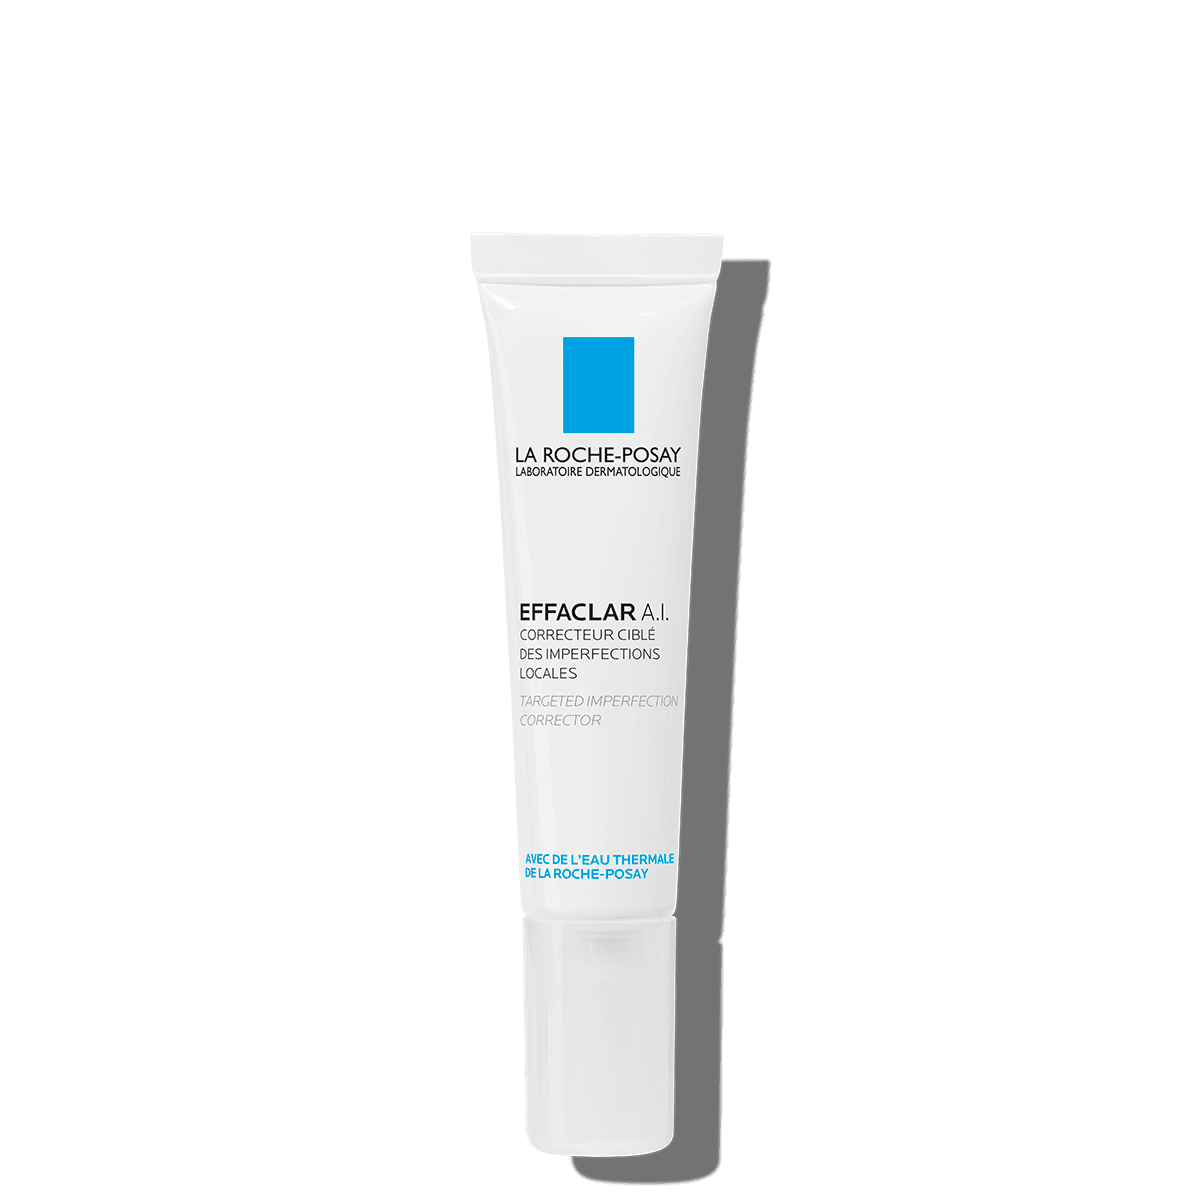 La Roche Posay Face Care Effaclar AI Targeted Imperfection Corrector 1